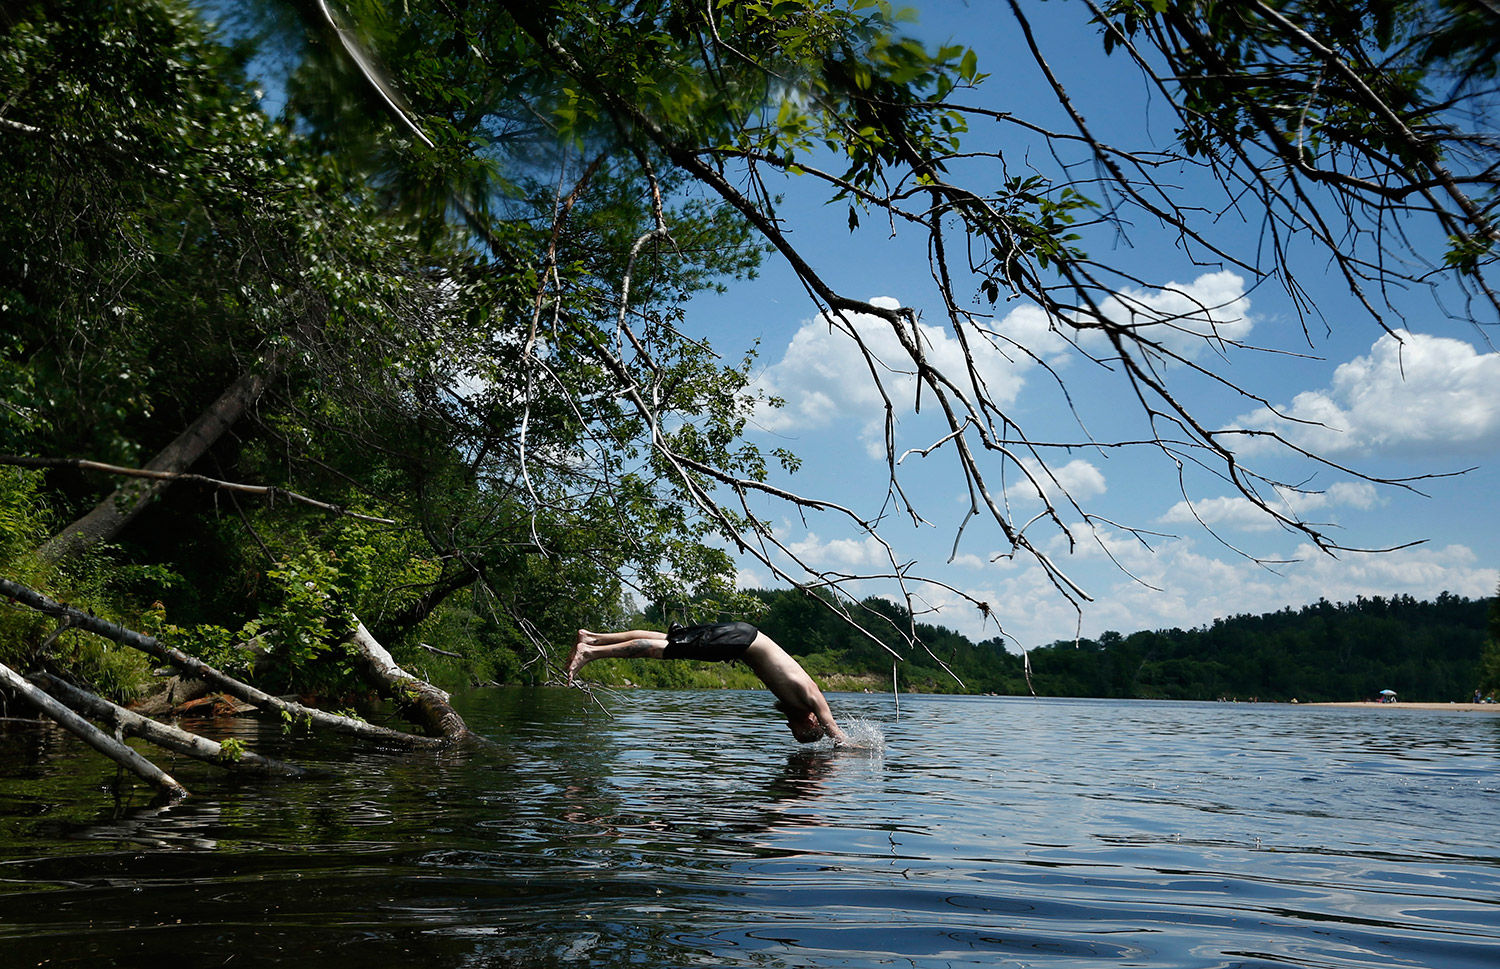 Kenny Bachman, of Brownfield, dives into the Saco River on Wednesday in Fryeburg. Thunderstorms on Thursday could cools things off.